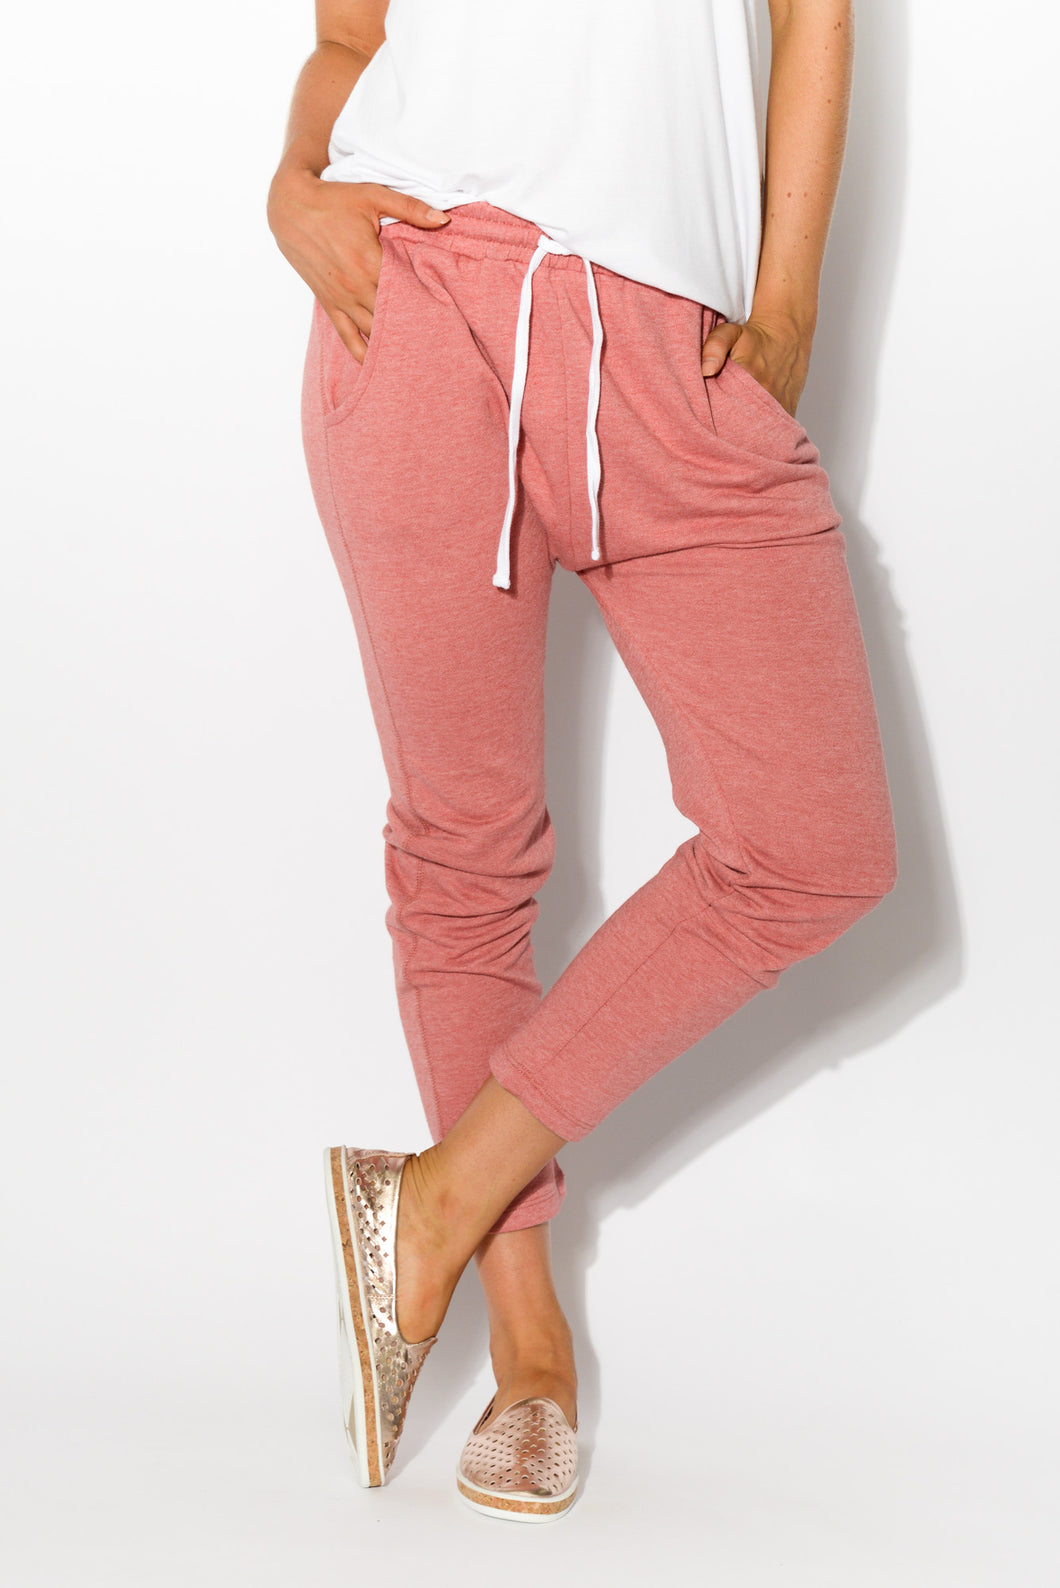 Saxon Rose Sweat Pant - Blue Bungalow